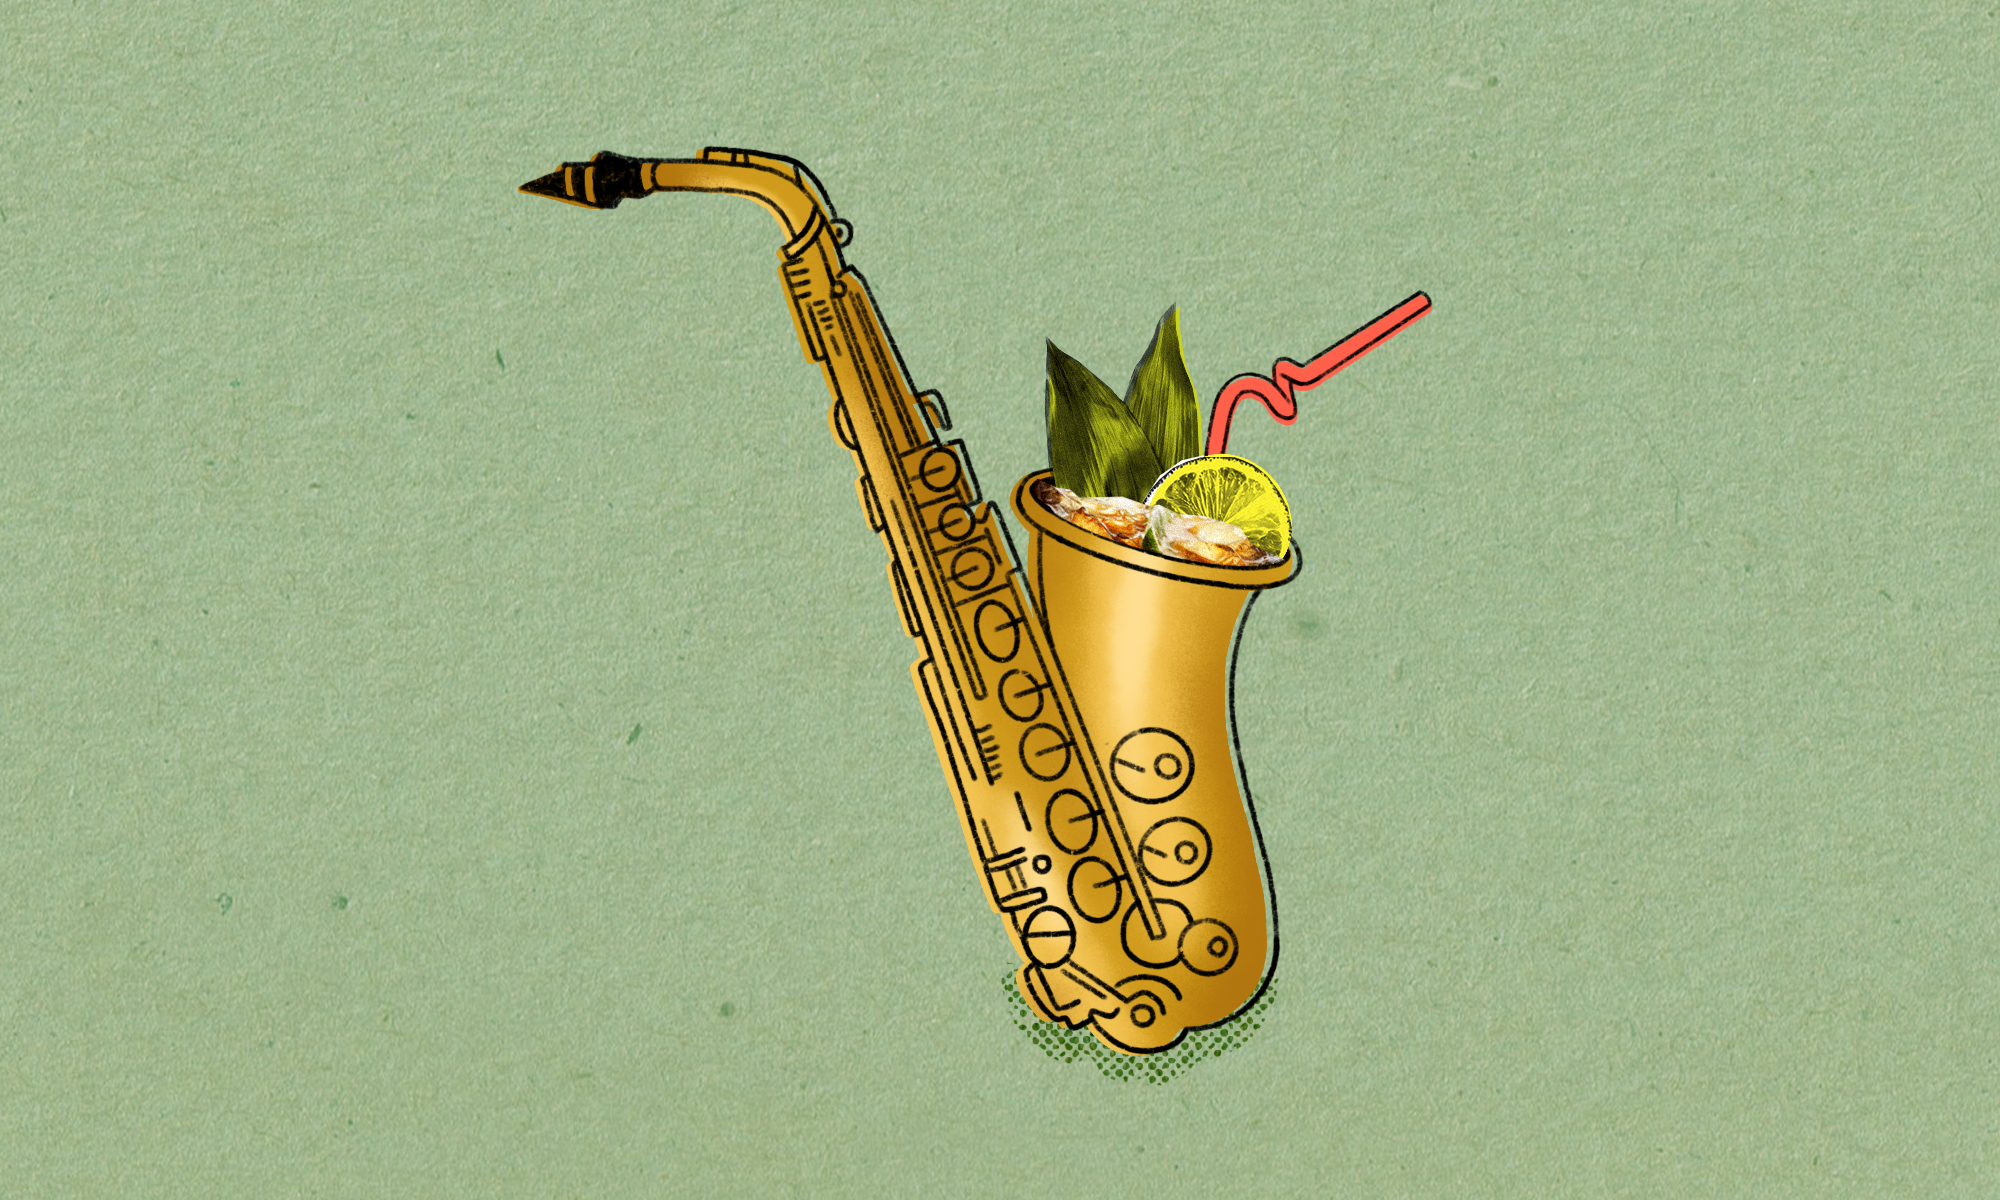 Drawing of a saxophone with a cocktail, including a lime wedge and a straw, in the opening of the horn